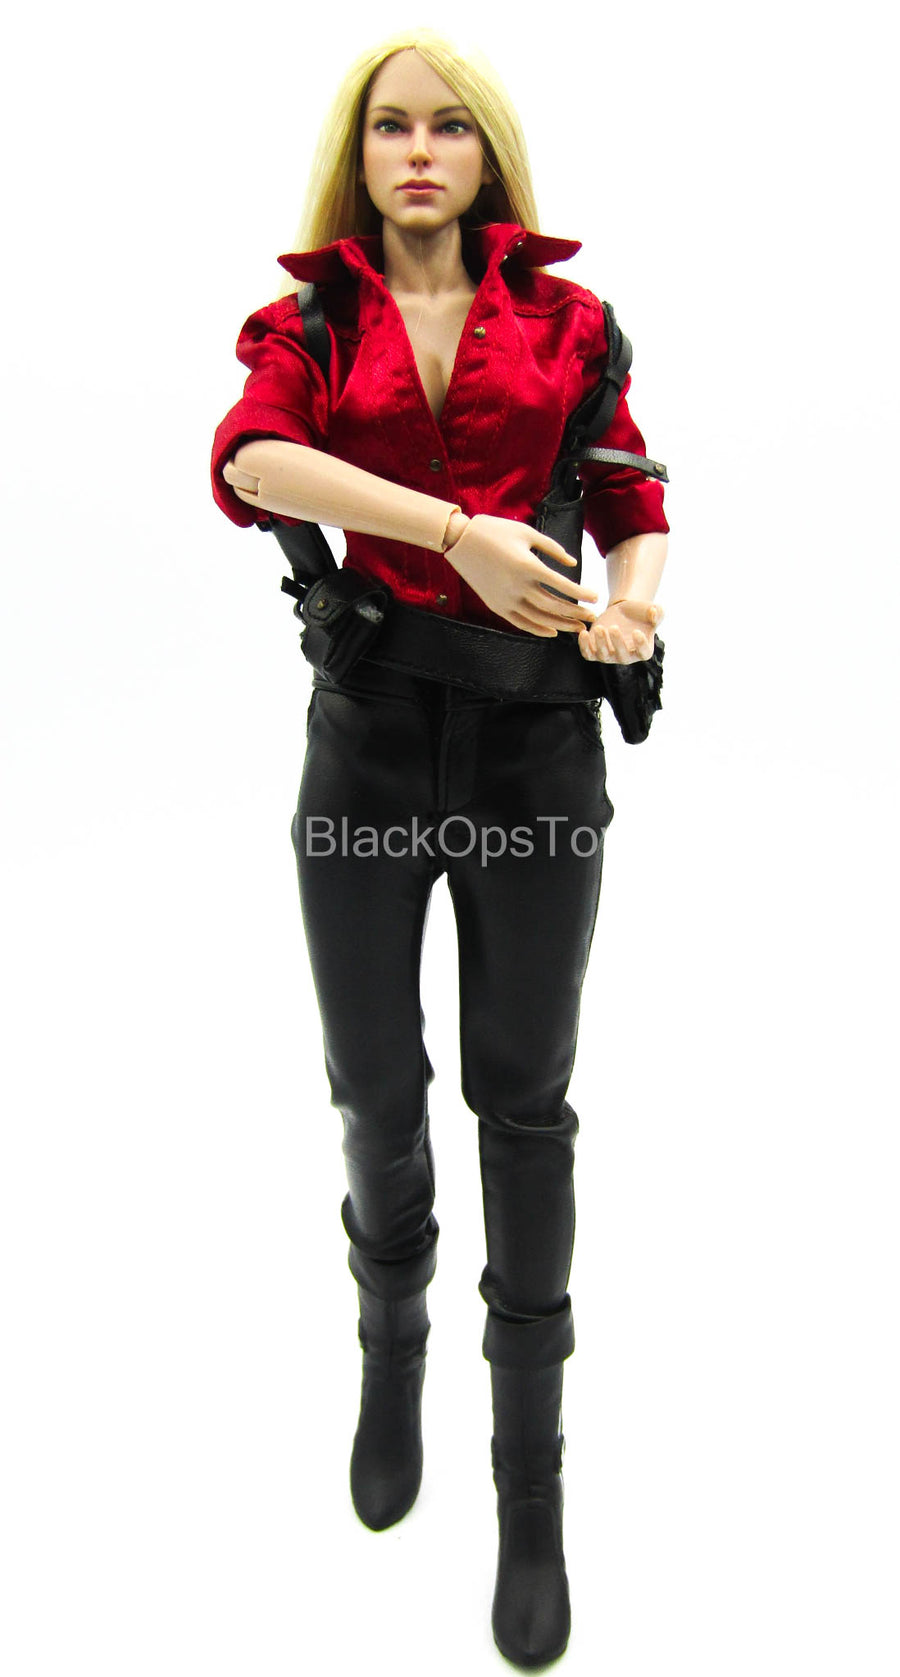 Resident Evil Uniform w/Female Base Body & Blonde Head Sculpt Mint in Box